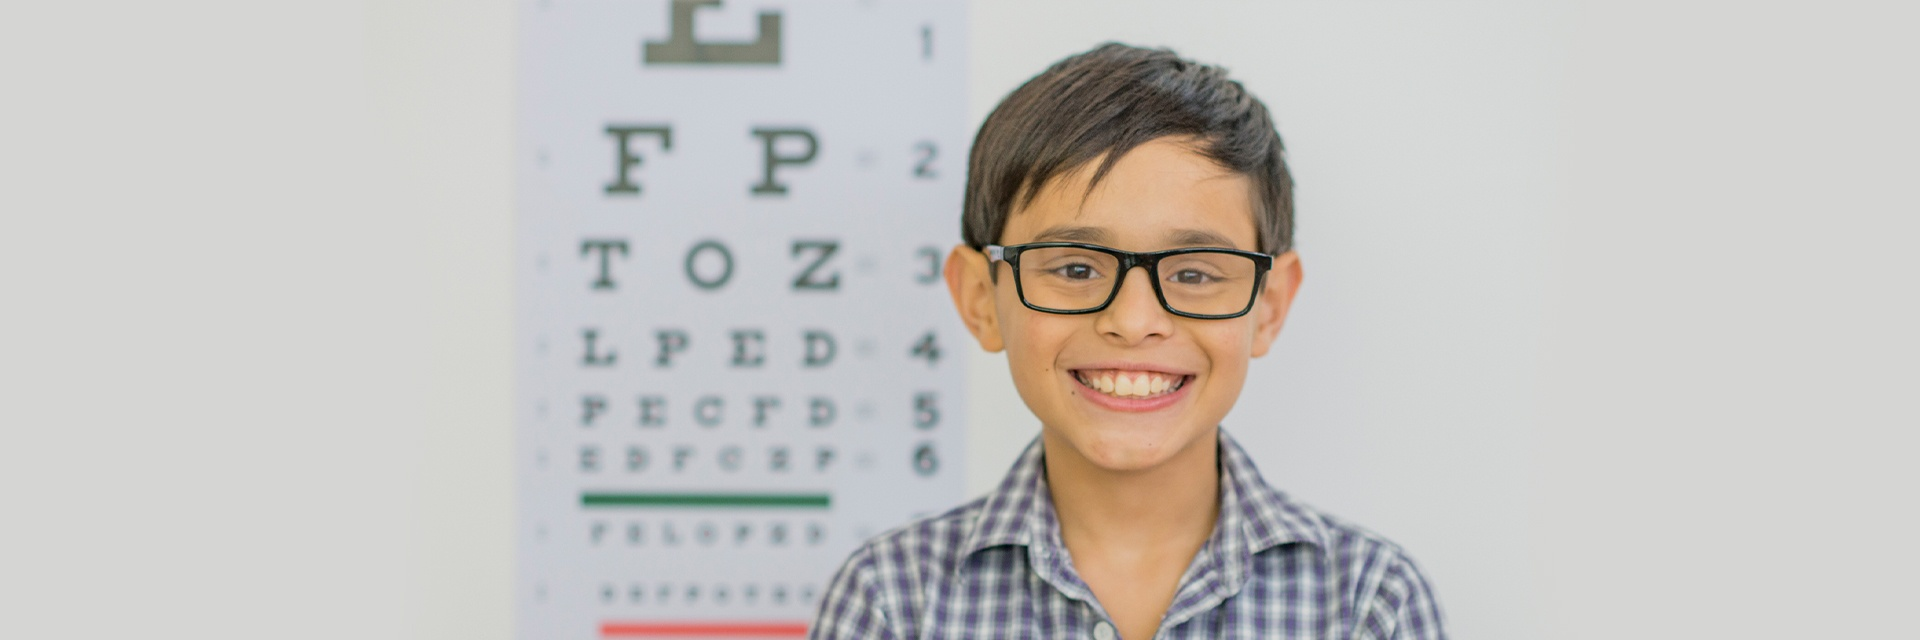 Pediatric Ophthalmology and Eye Muscle Disorders - Tri-Century Eye Care